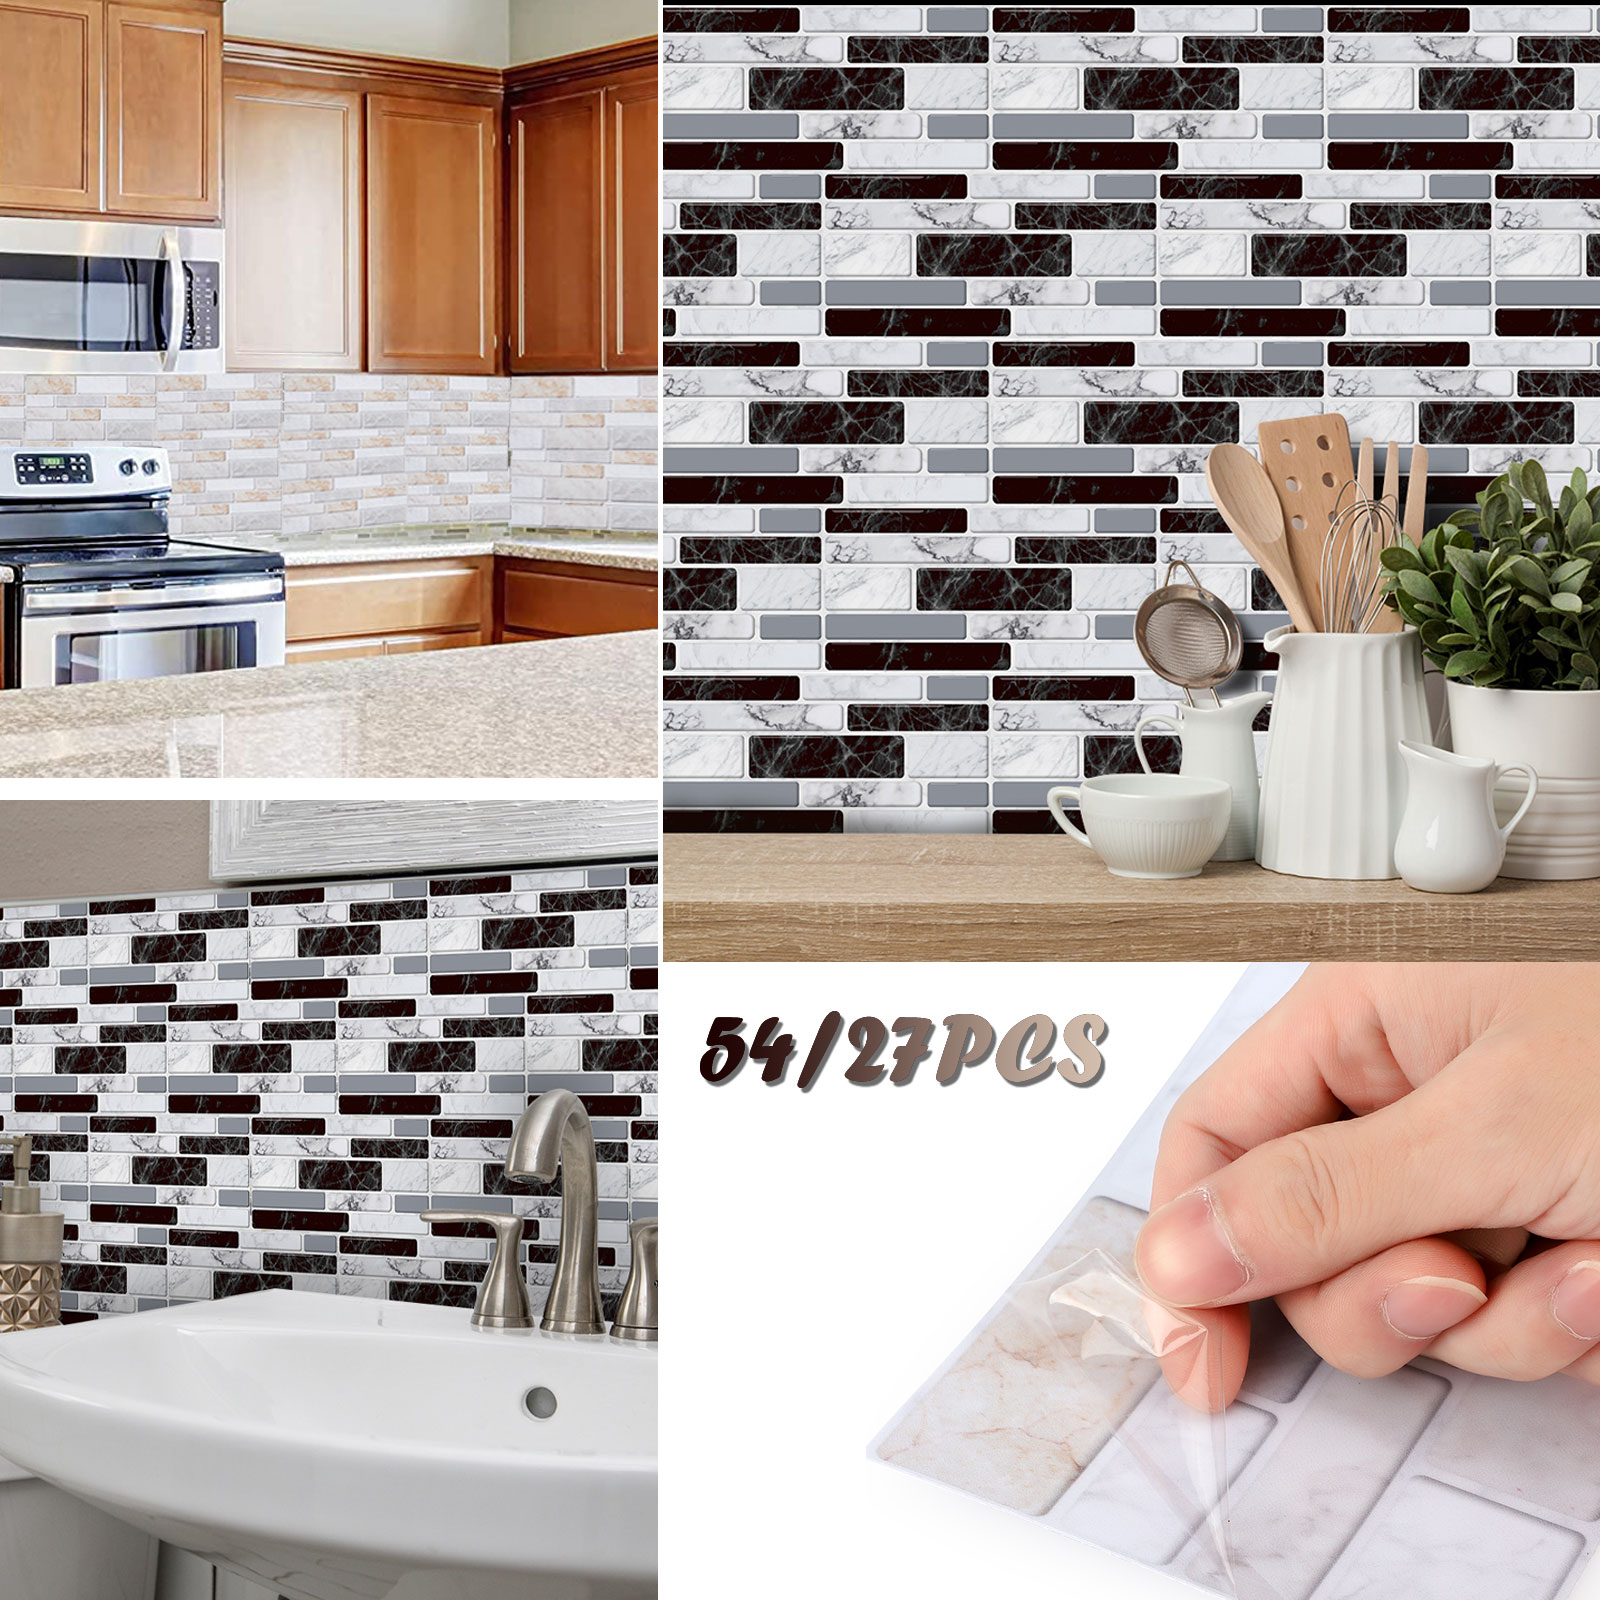 20 Mosaic Tile Sticker Stick On Bathroom Kitchen Home Wall Decals Self-adhesive